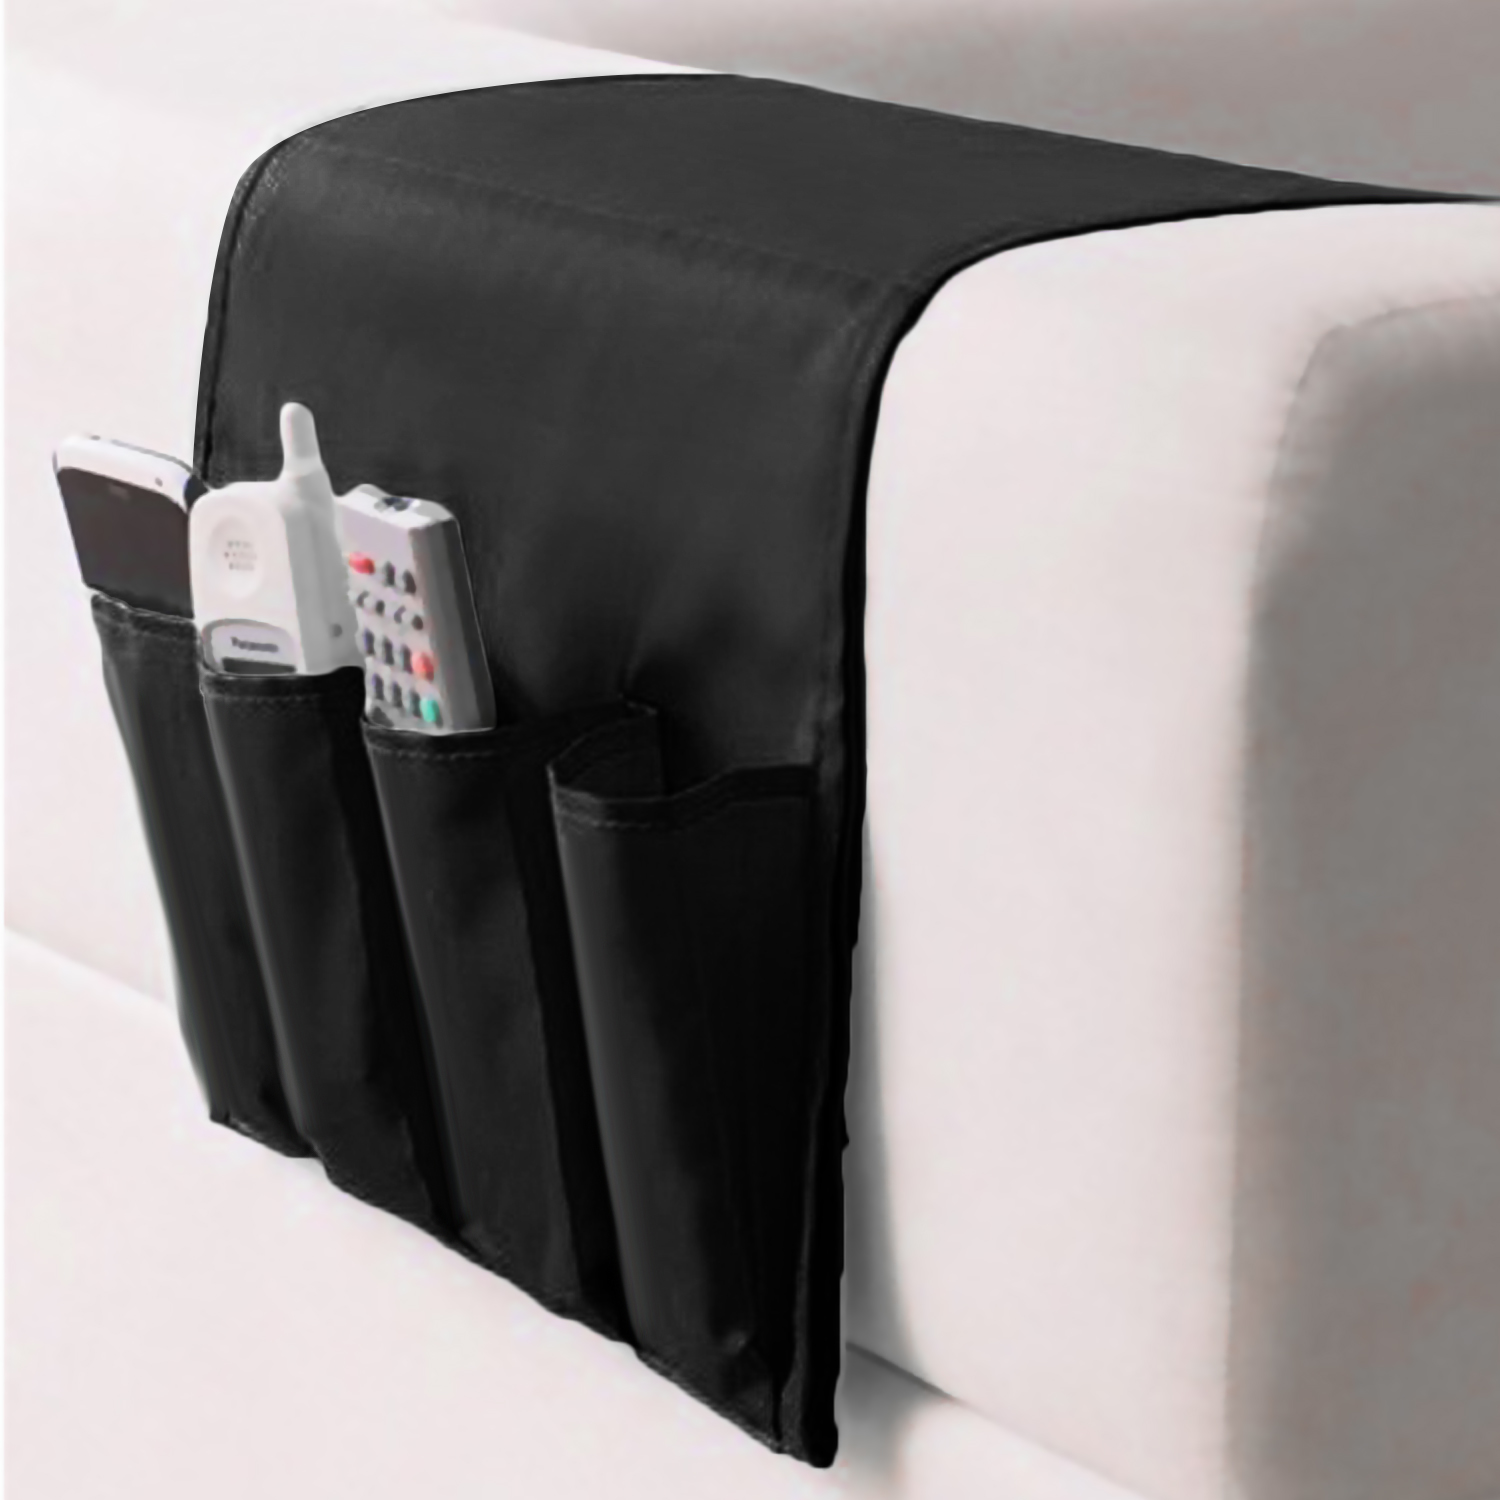 Behogar Foldable Oxford <font><b>Sofa</b></font> Chair Bedside Storage Organizer Bag Durable 4 <font><b>Pockets</b></font> Hanging Holder <font><b>for</b></font> <font><b>Remote</b></font> Control Magazine image